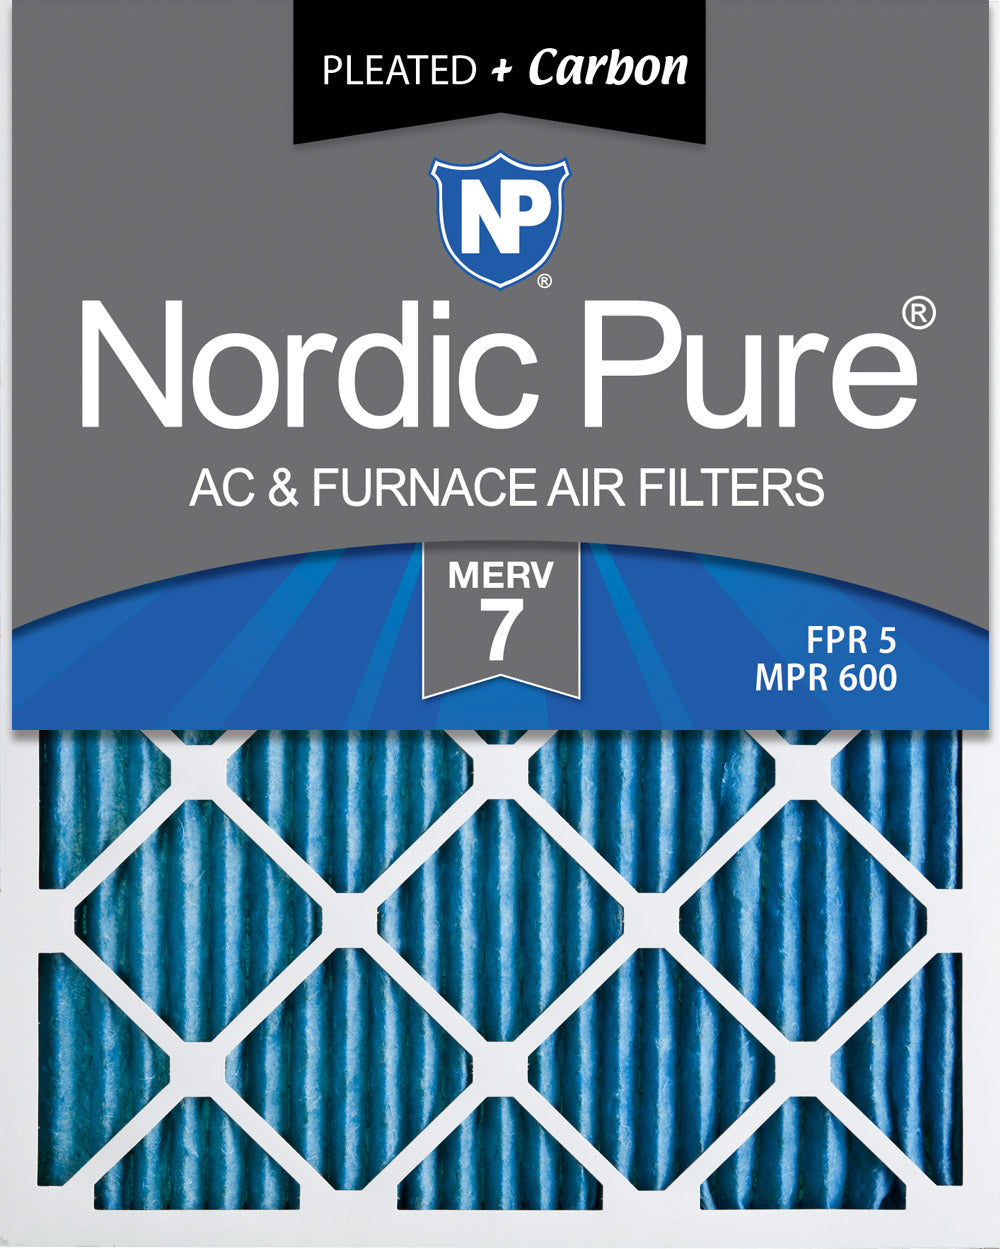 14x20x2 Pleated Air Filters MERV 7 Plus Carbon 12 Pack